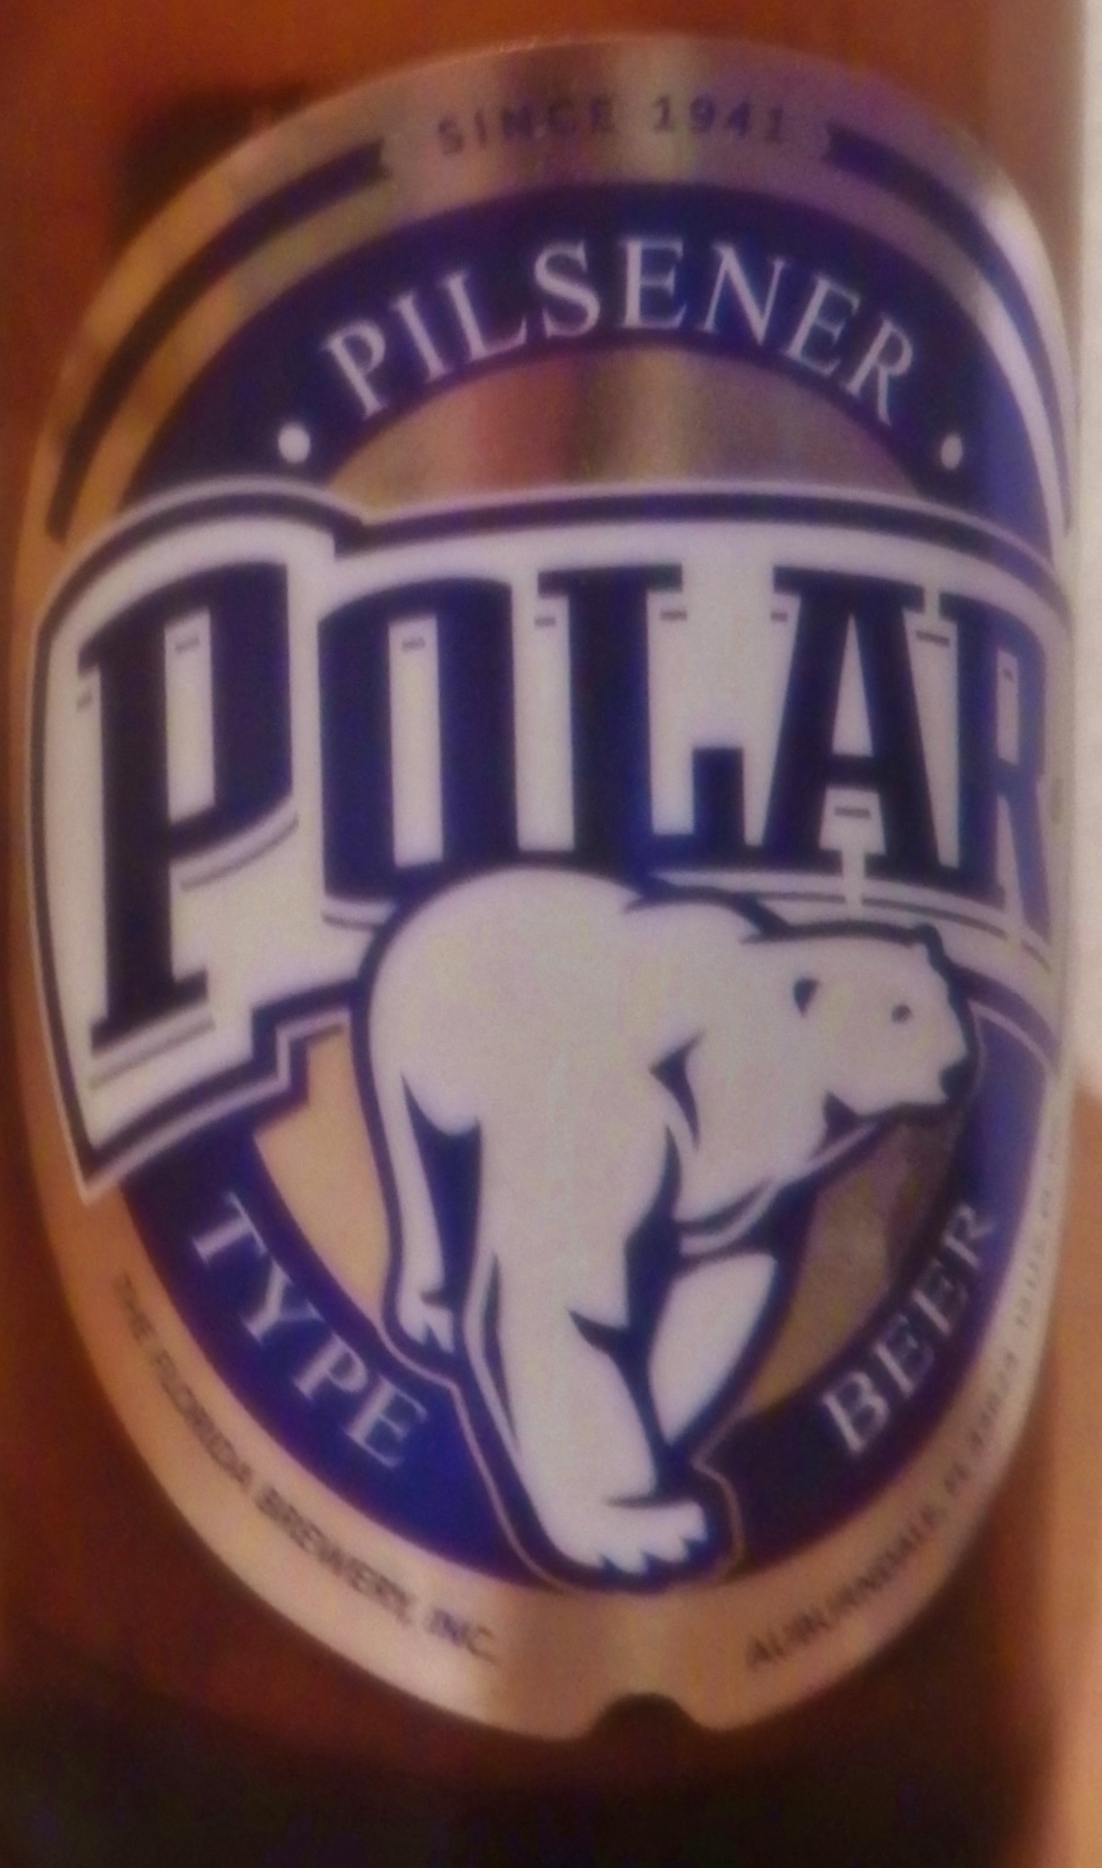 Polar beer from Venezuela. The perfect vacation beer